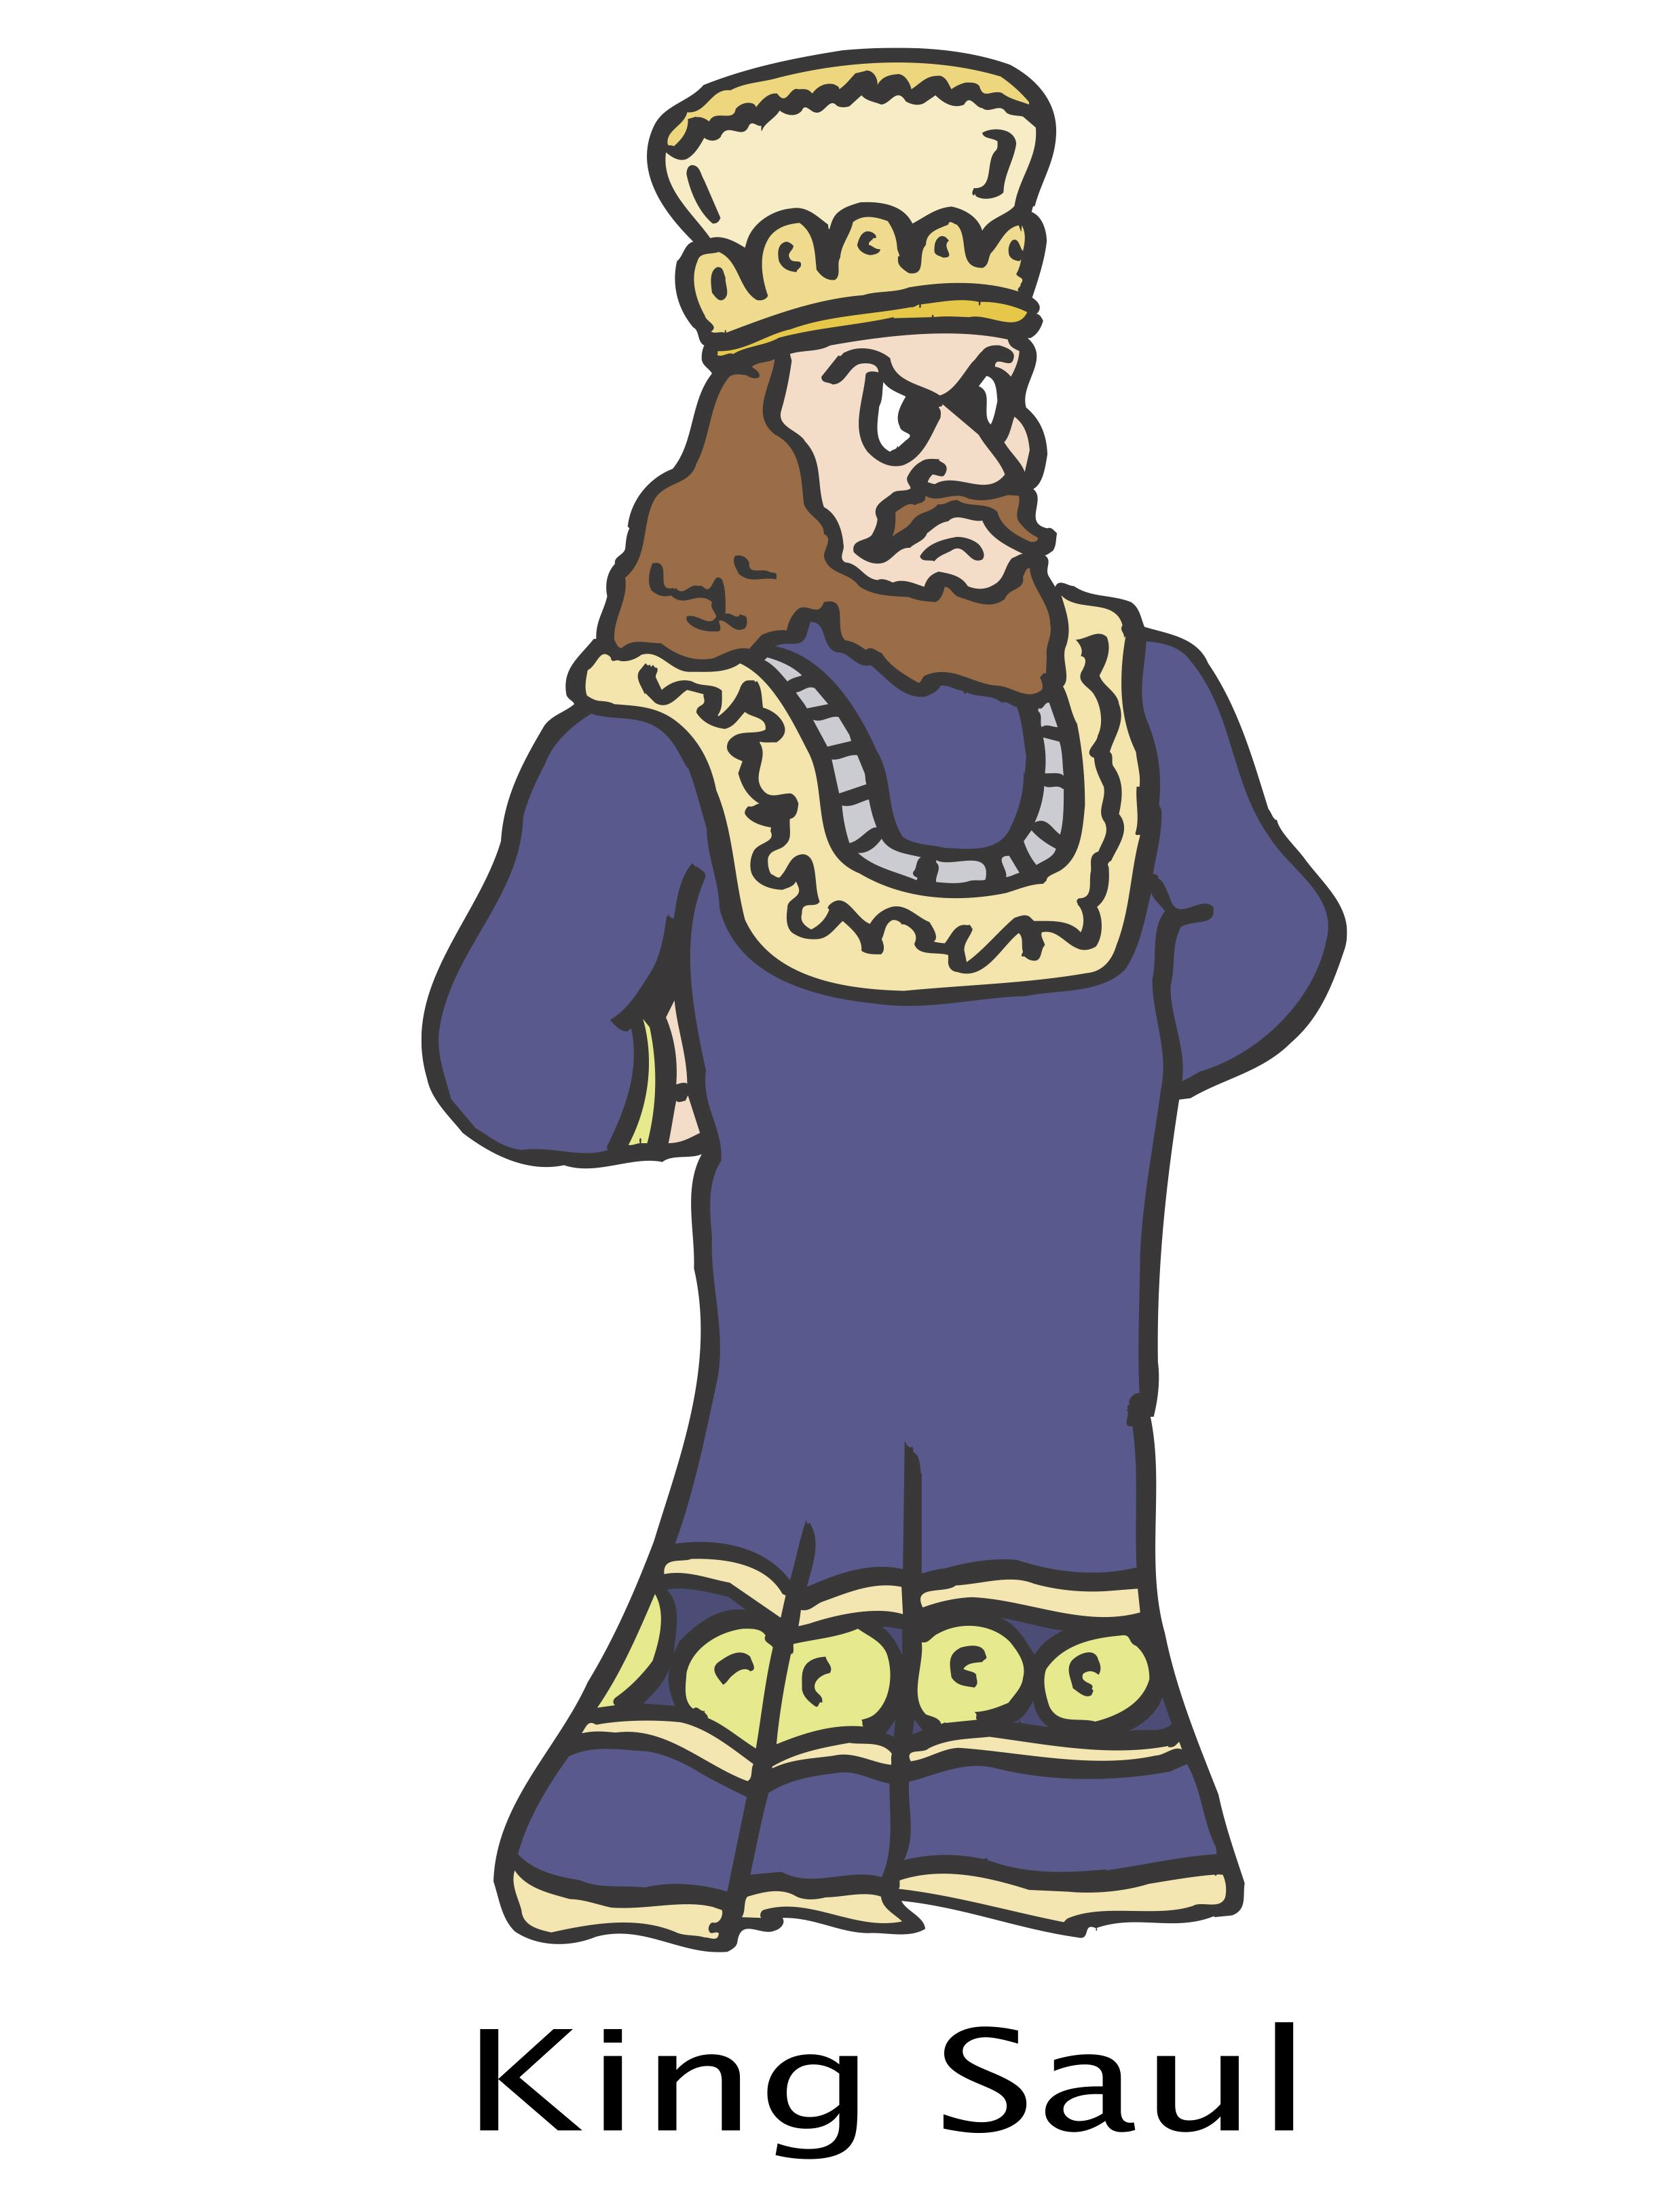 King Saul S Crown The Bible Story Of Saul For Preschoolers